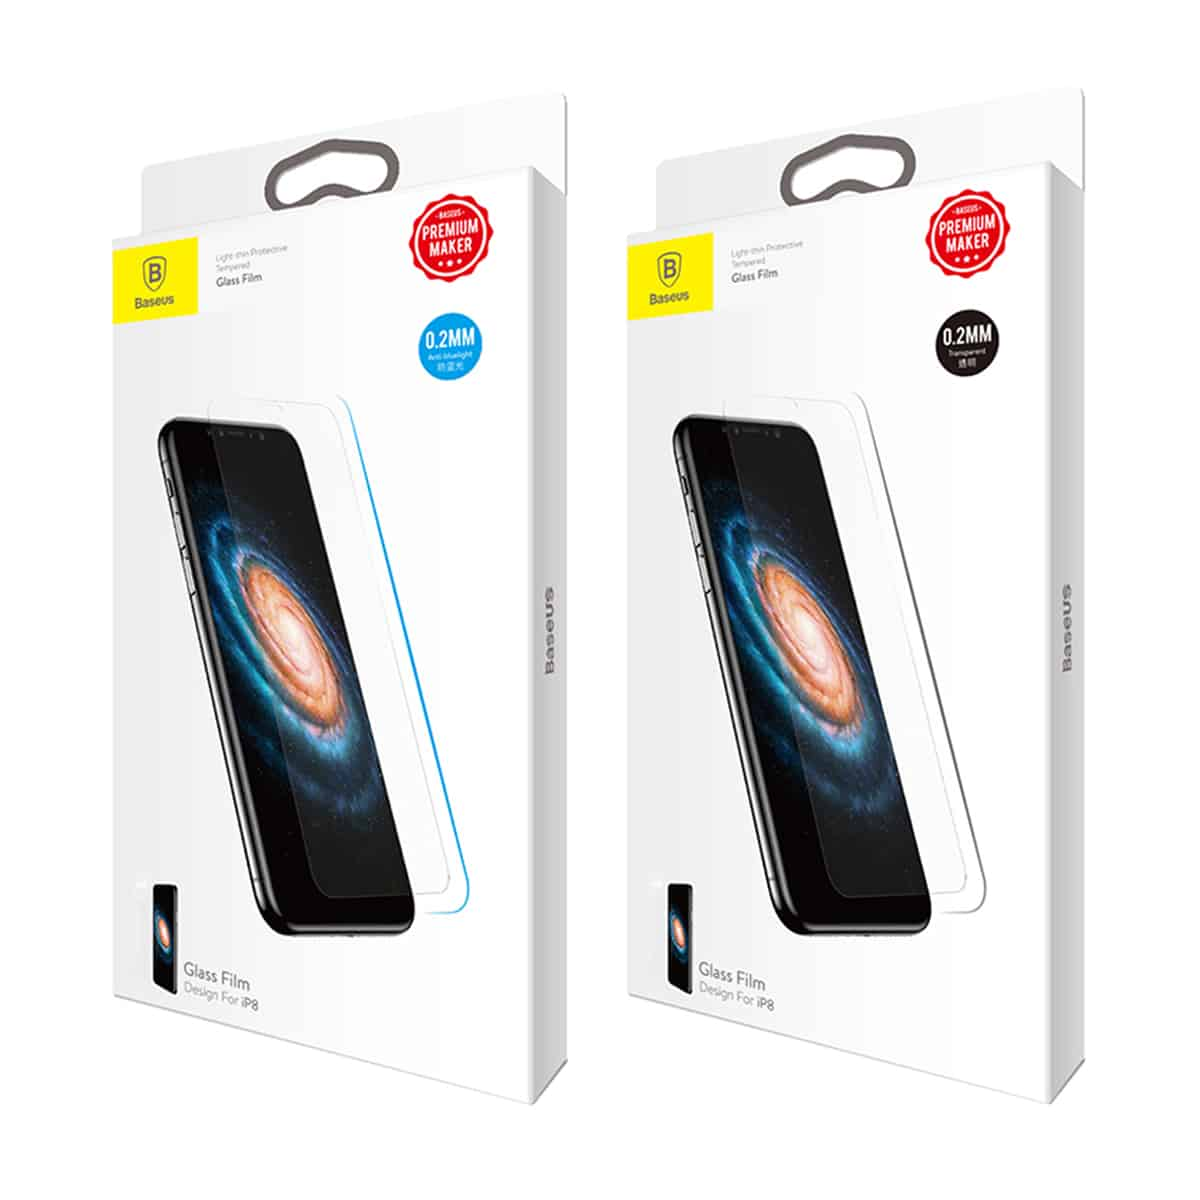 the latest 5bf58 b15b8 Baseus 0.2mm Thin Glass Screen Protector For iPhone X